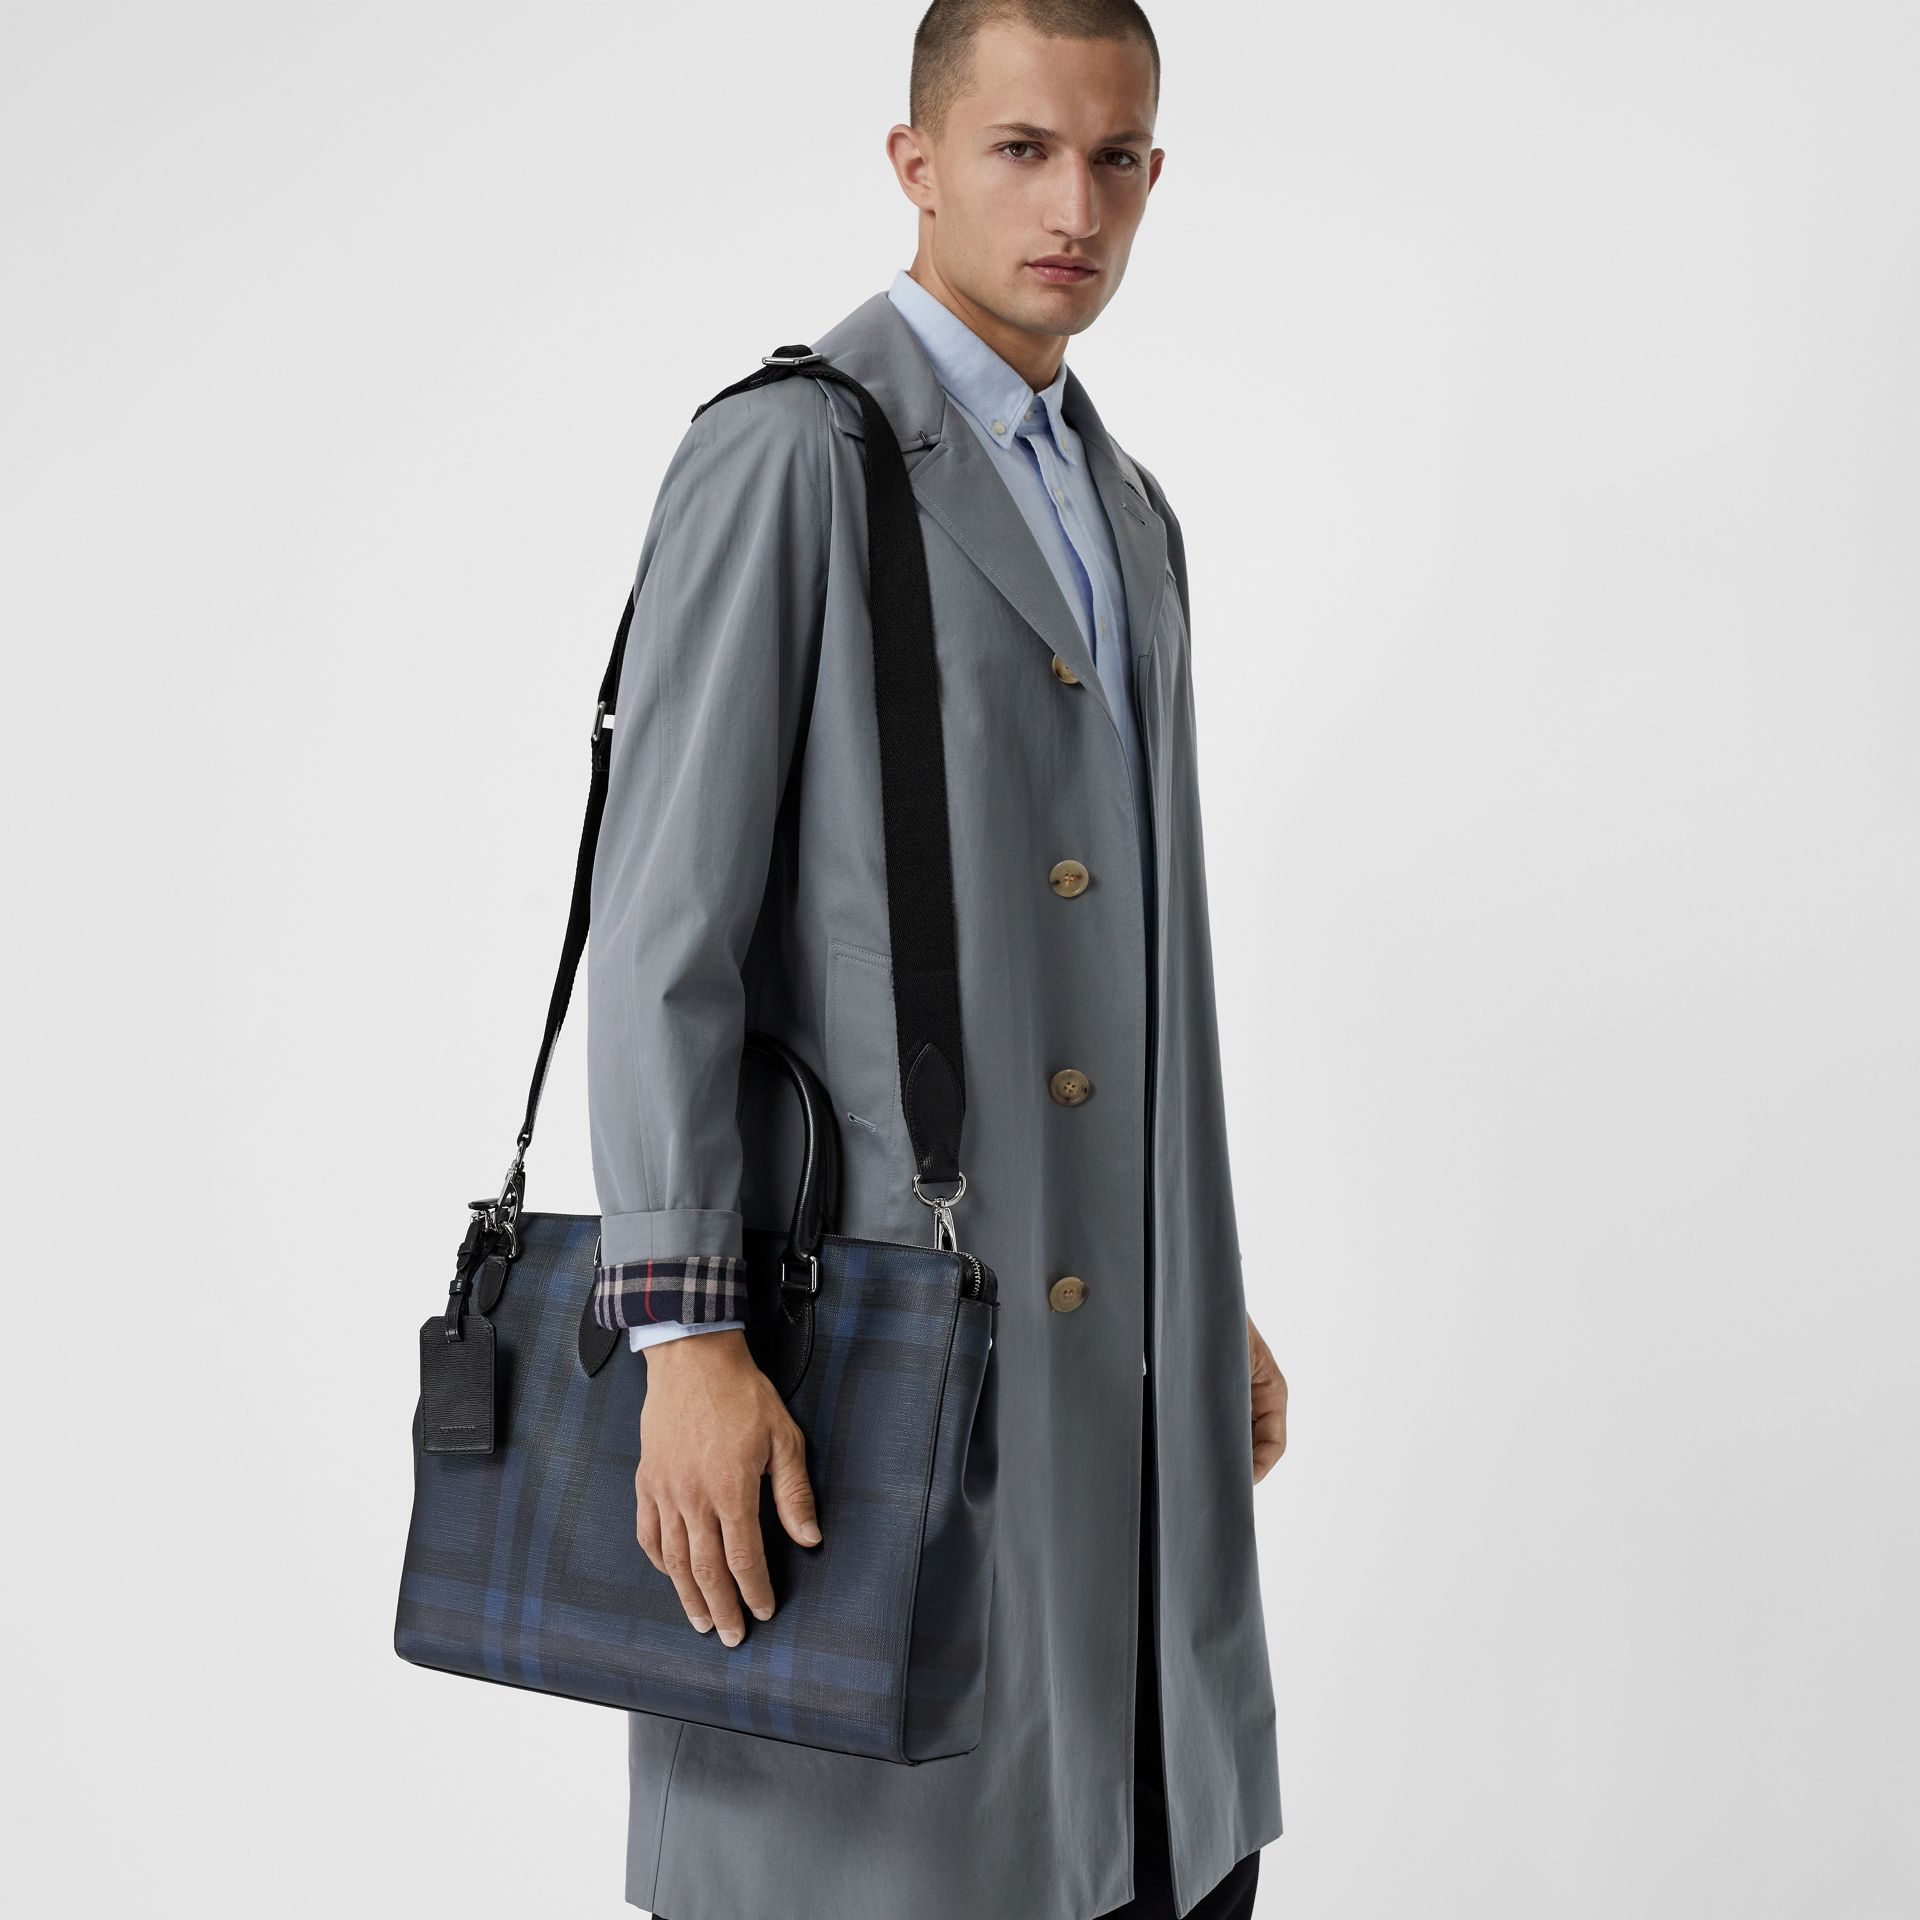 Large London Check Briefcase in Navy/black - Men | Burberry Canada - gallery image 3